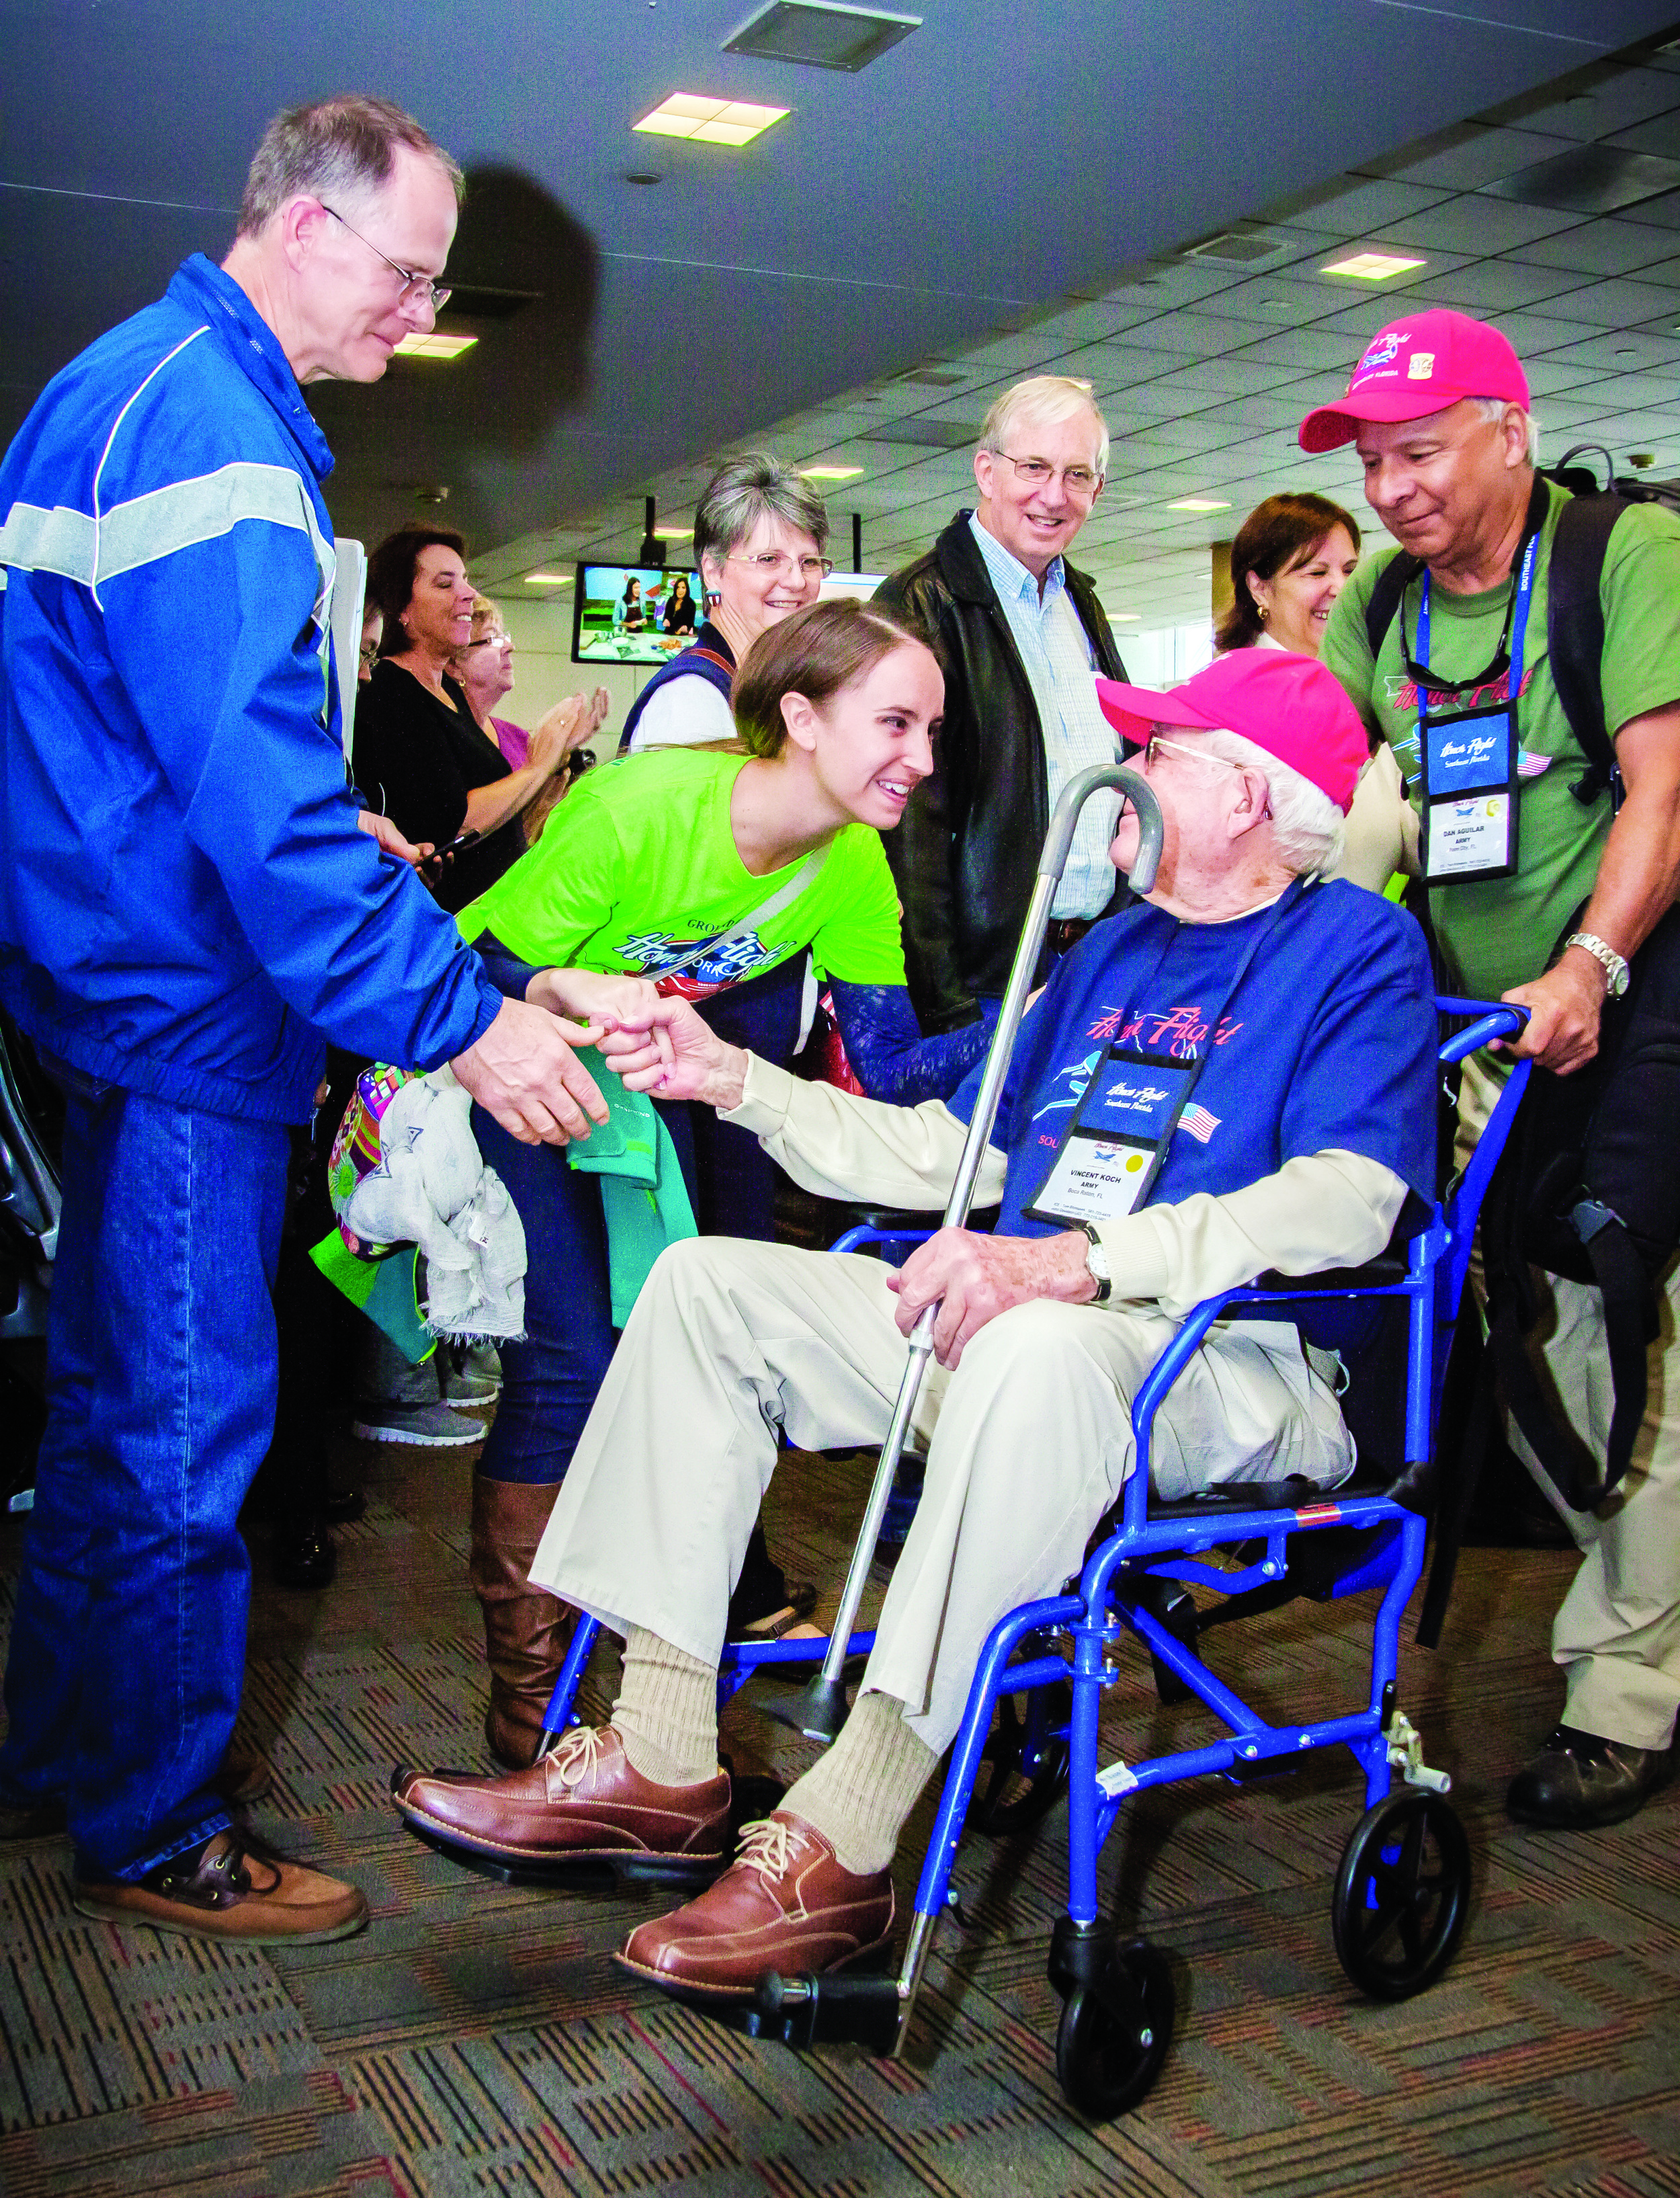 World War II Army veteran Vincent Koch is pushed by his guardian, Army veteran Dan Aguilar, Palm City, as he shakes hands with an enthusiastic member of the Honor Flight Ground Crew and greeted by others during his arrival in Washington, D.C., Oct. 24 on the Southeast Florida Honor Flight.